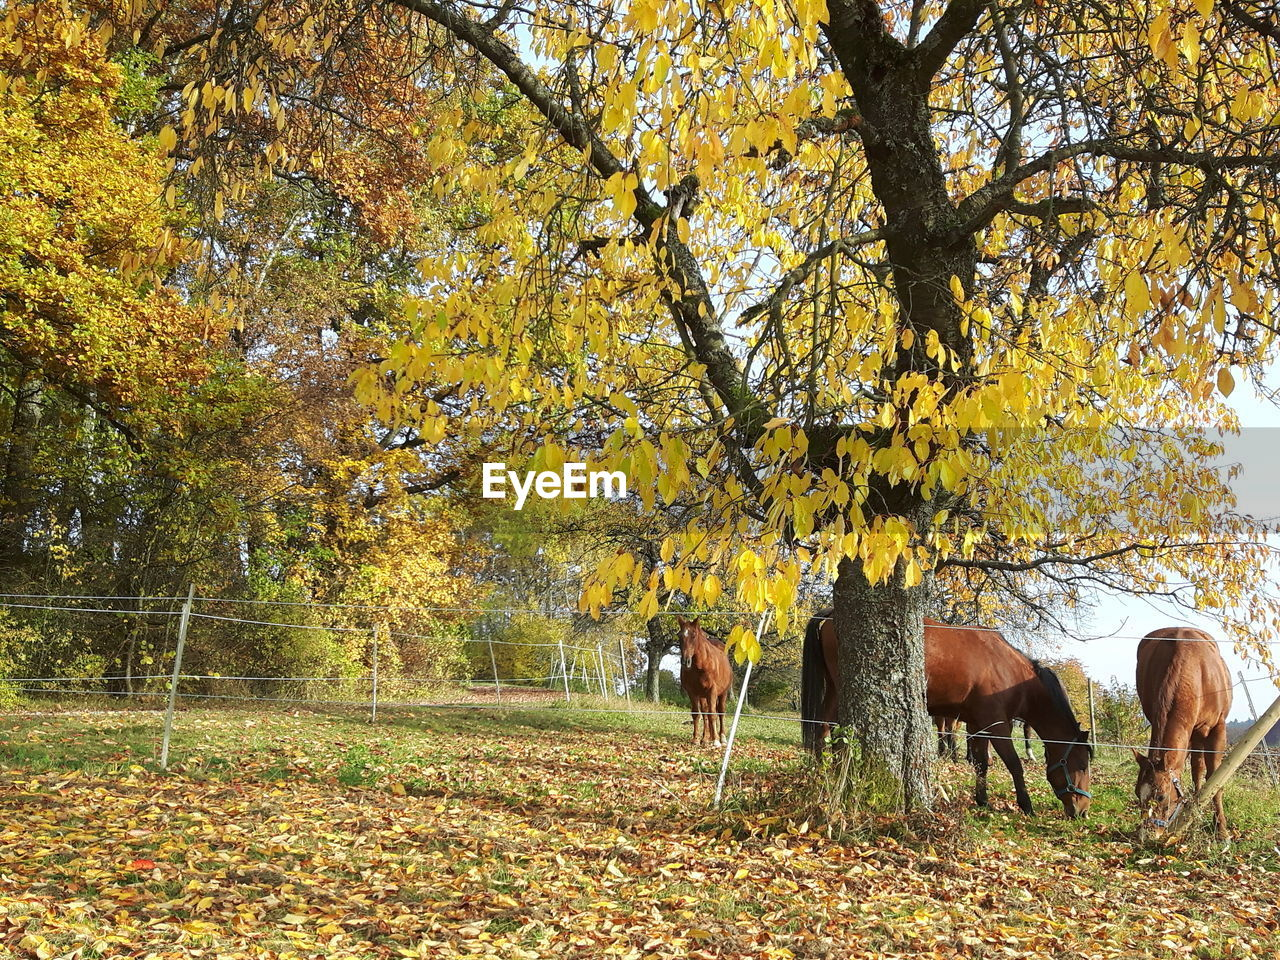 autumn, tree, leaf, change, nature, animal themes, mammal, beauty in nature, field, tranquility, no people, outdoors, day, domestic animals, livestock, branch, yellow, scenics, full length